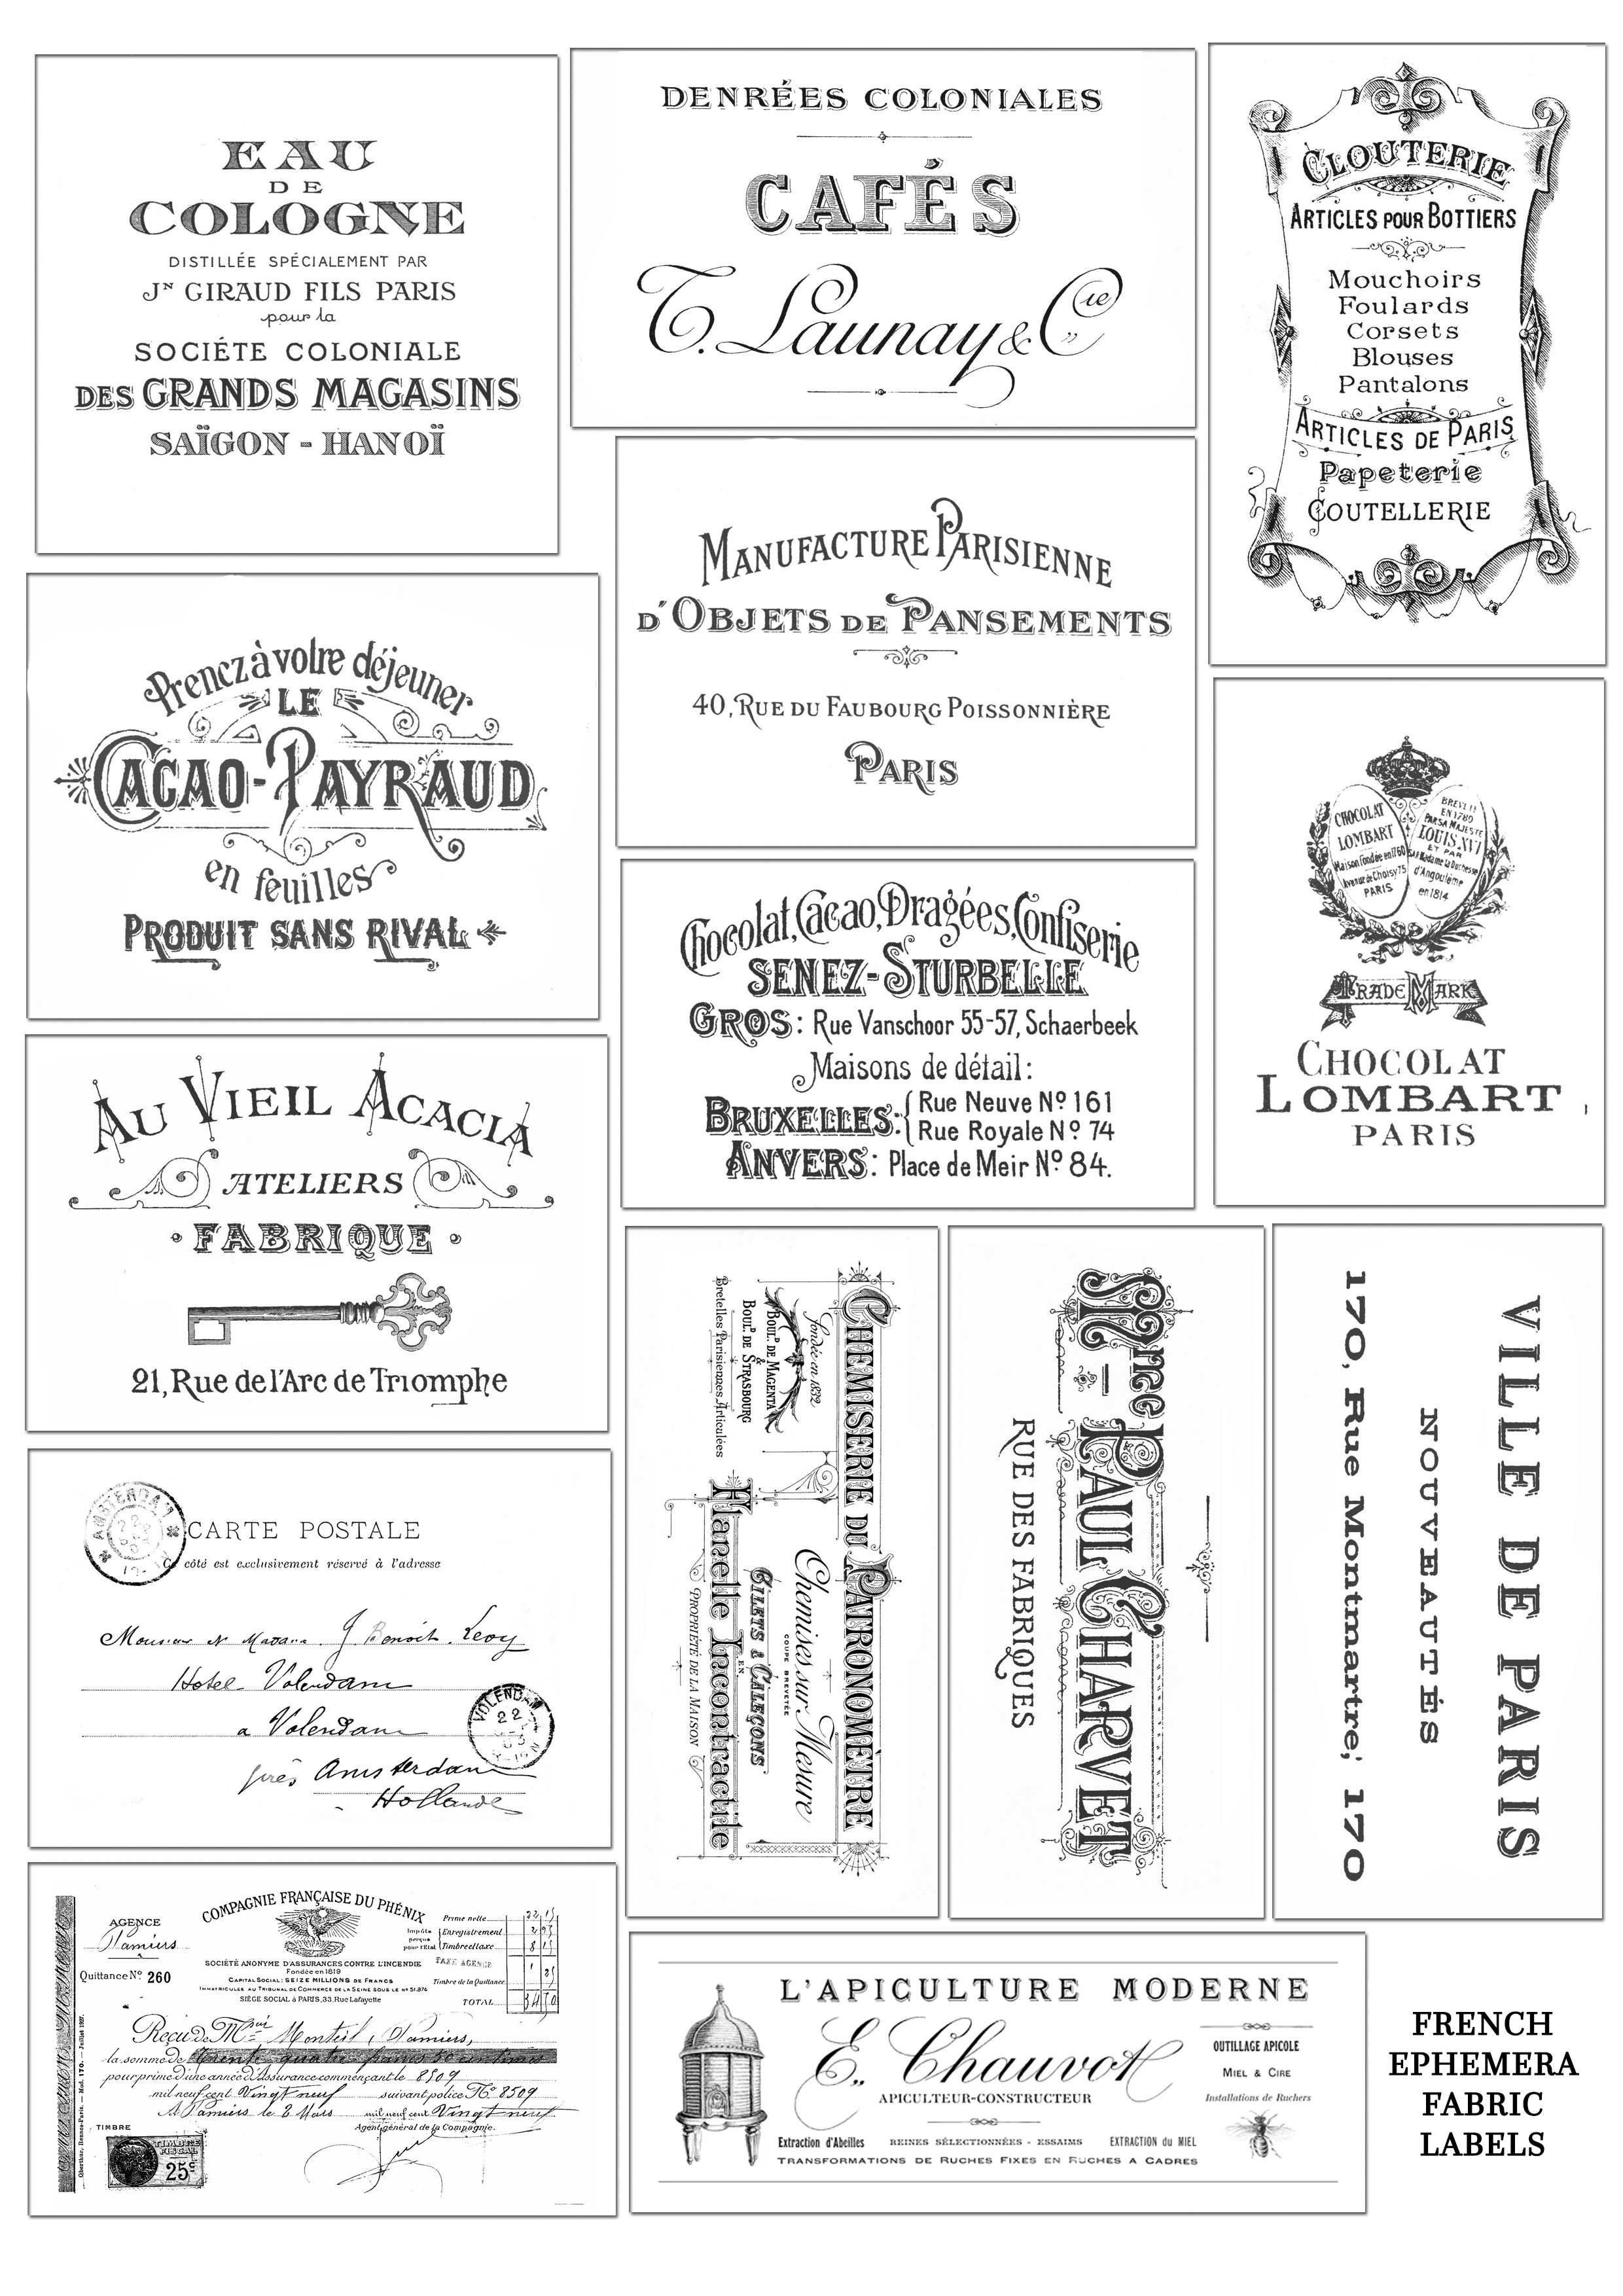 French Ephemera Fabric Labels Or Tags